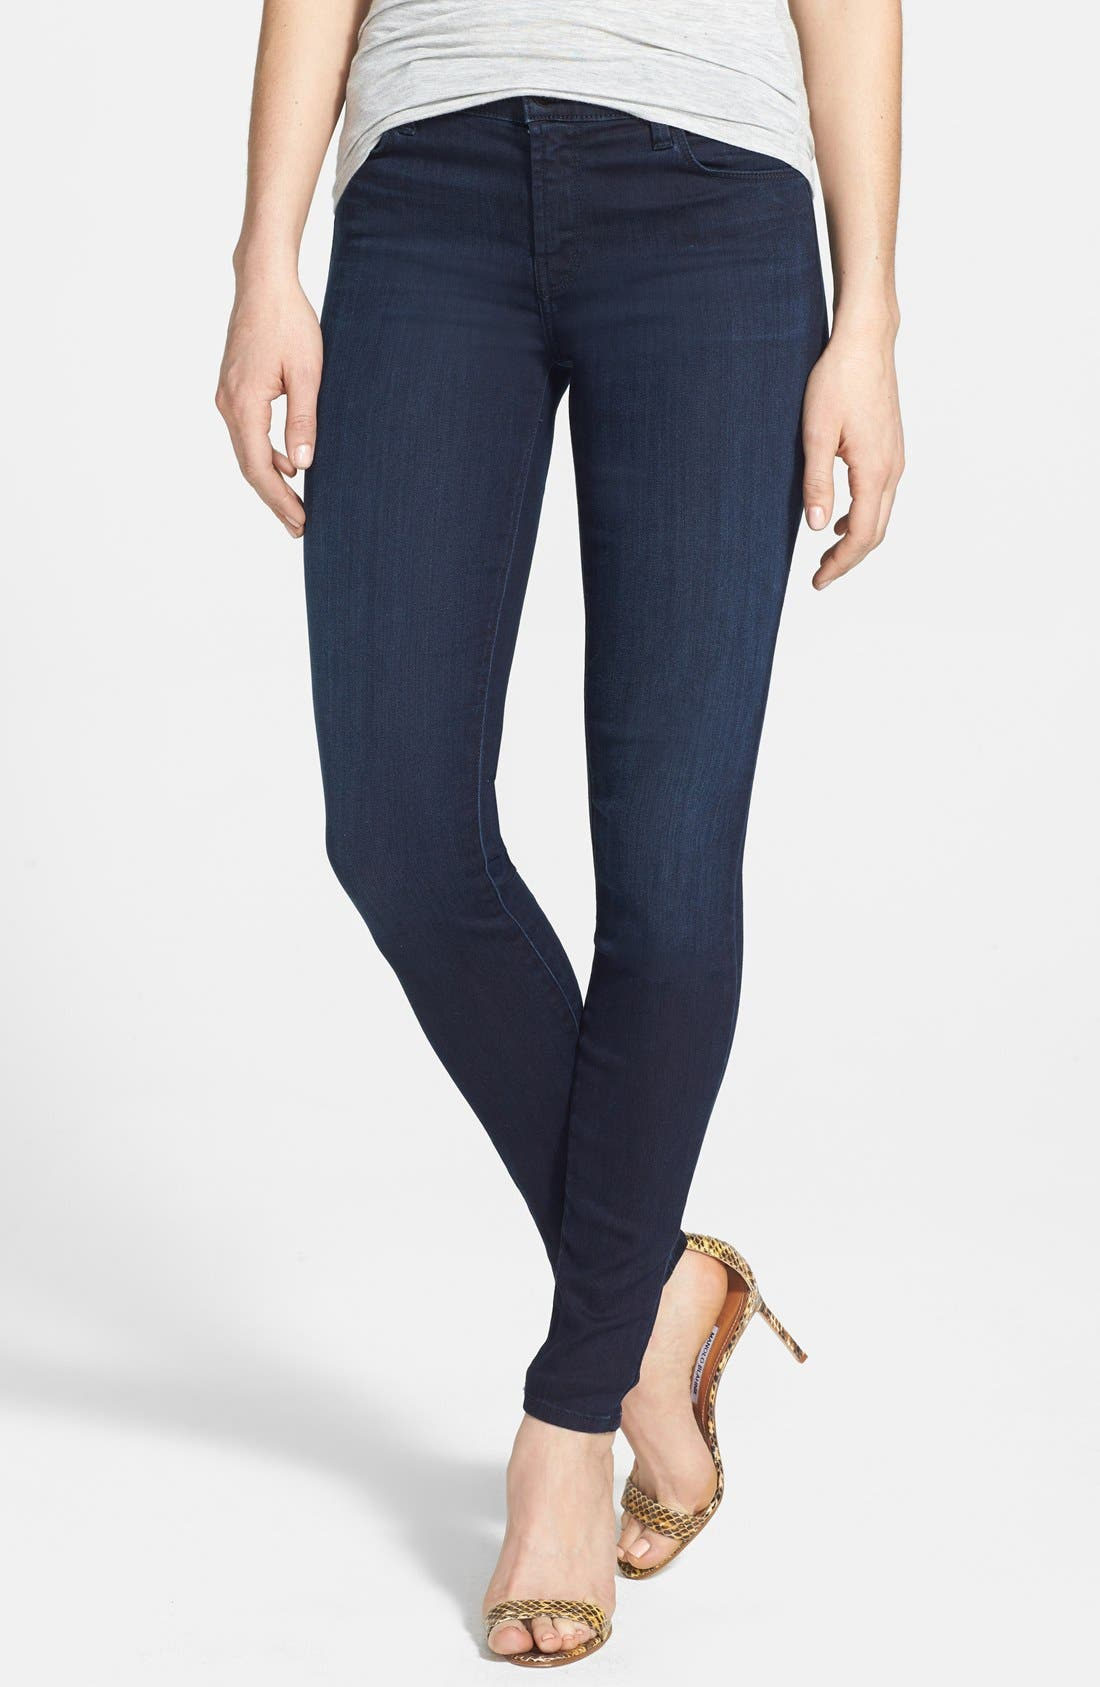 Alternate Image 1 Selected - J Brand '620' Skinny Jeans (Darkness)